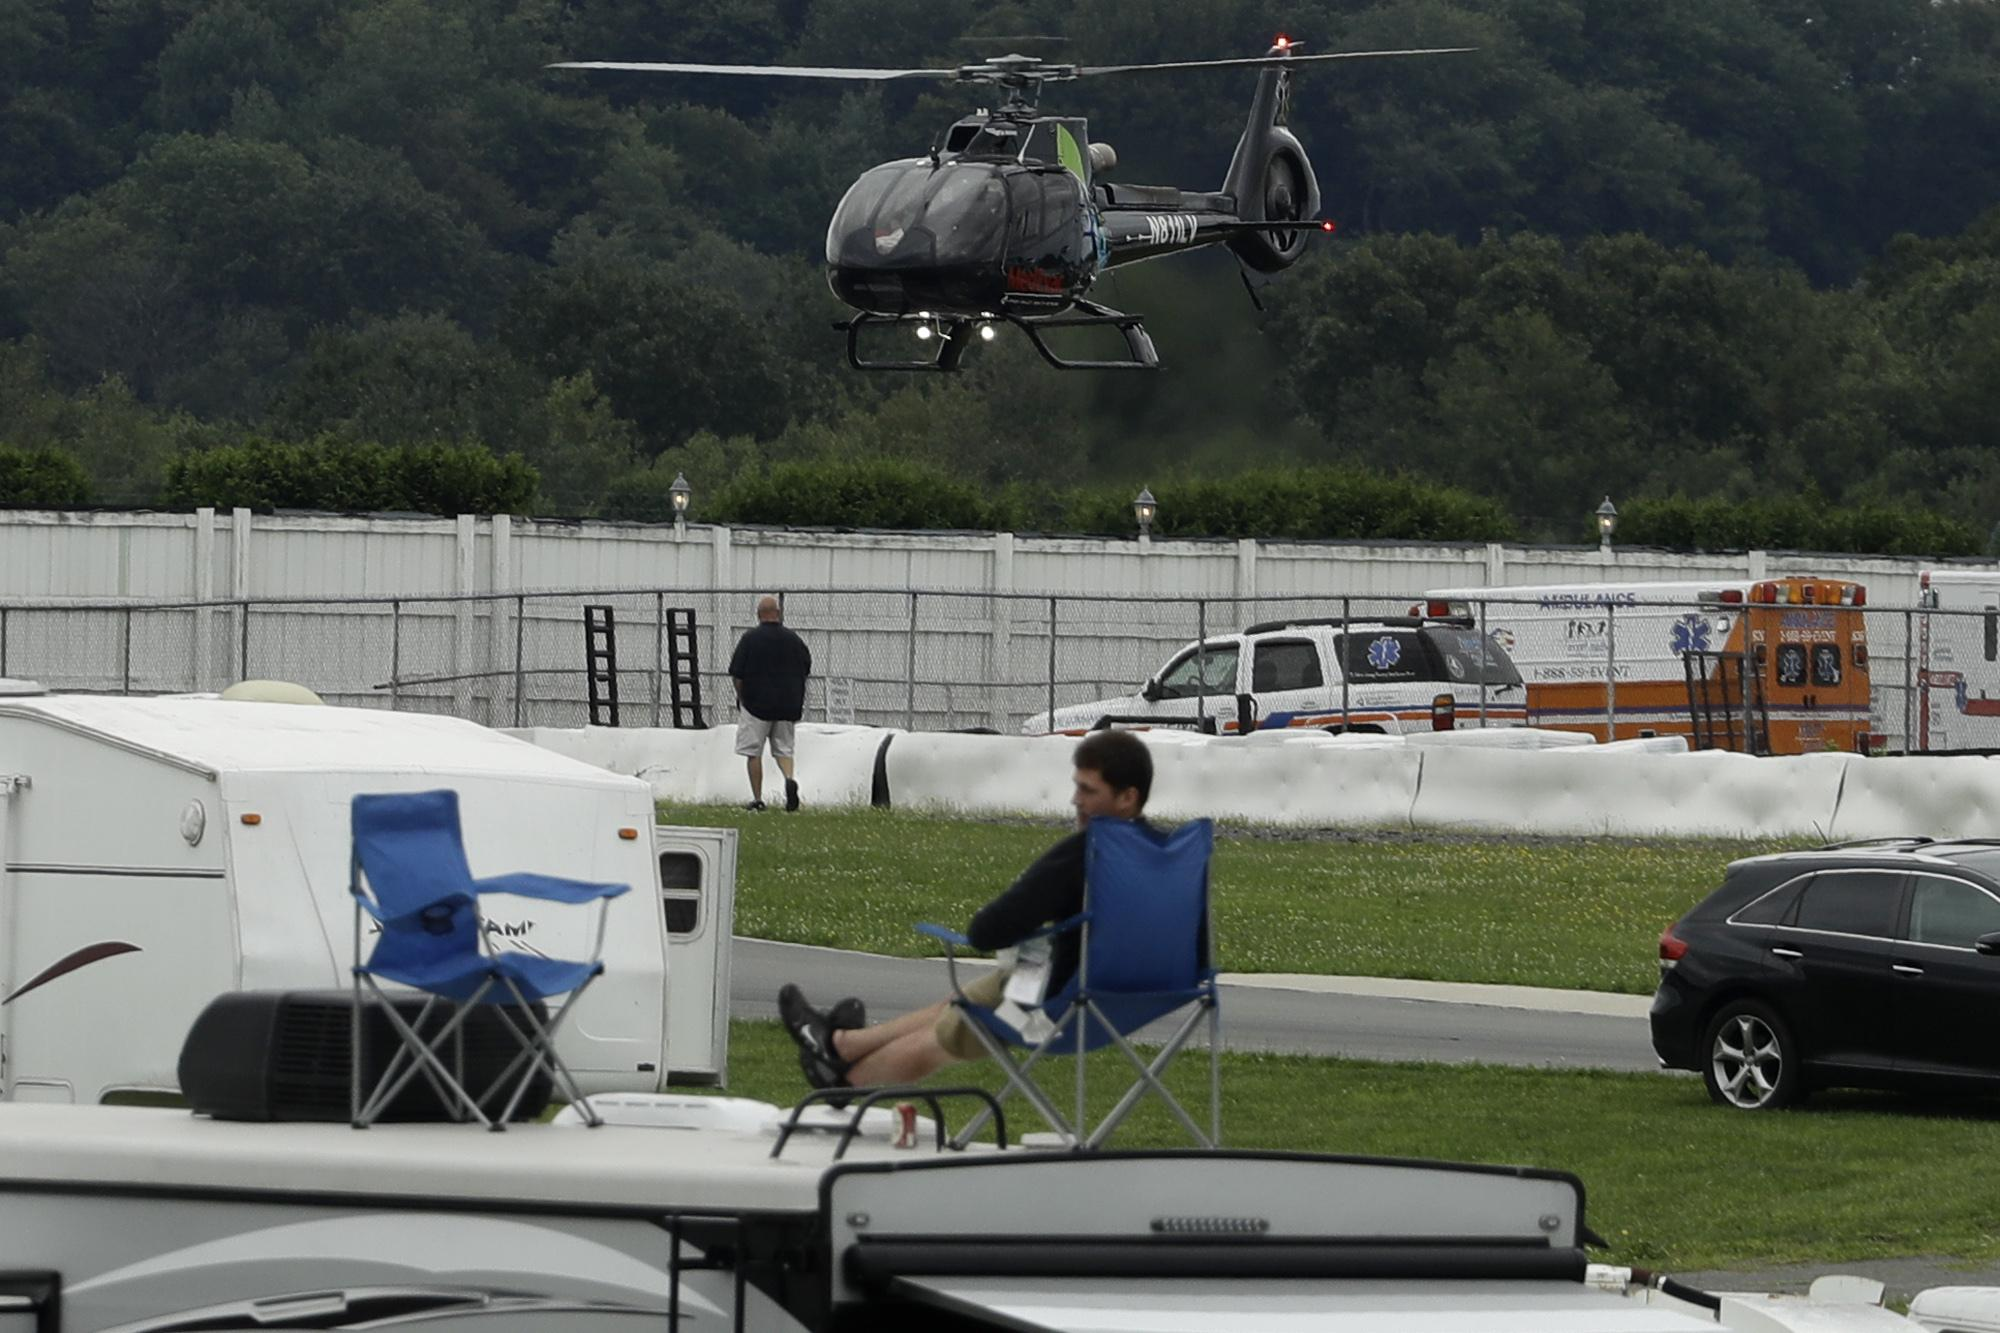 The air ambulance helicopter takes off from the infield during the IndyCar auto race at Pocono Raceway